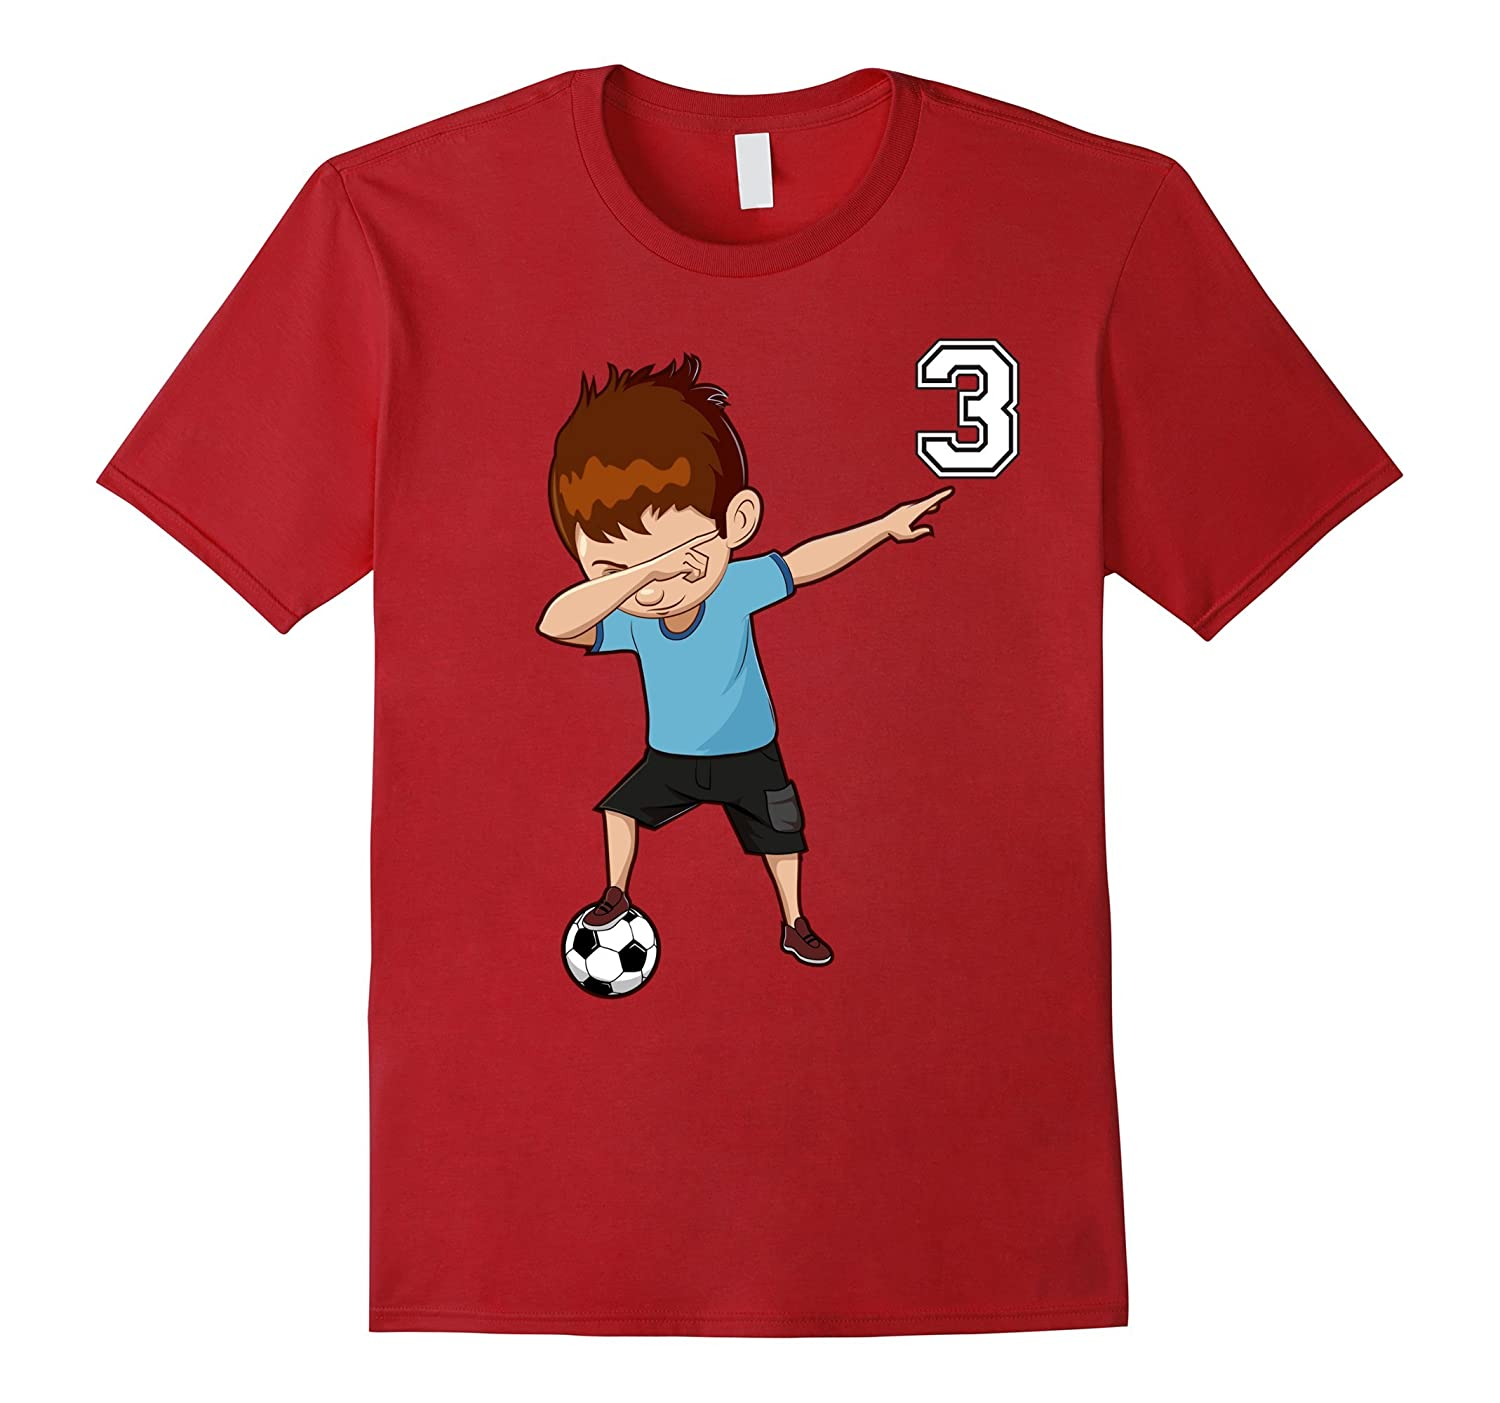 #3 Soccer Shirt for Boys Funny Dabbing Dab Dance Soccer Ball-Art